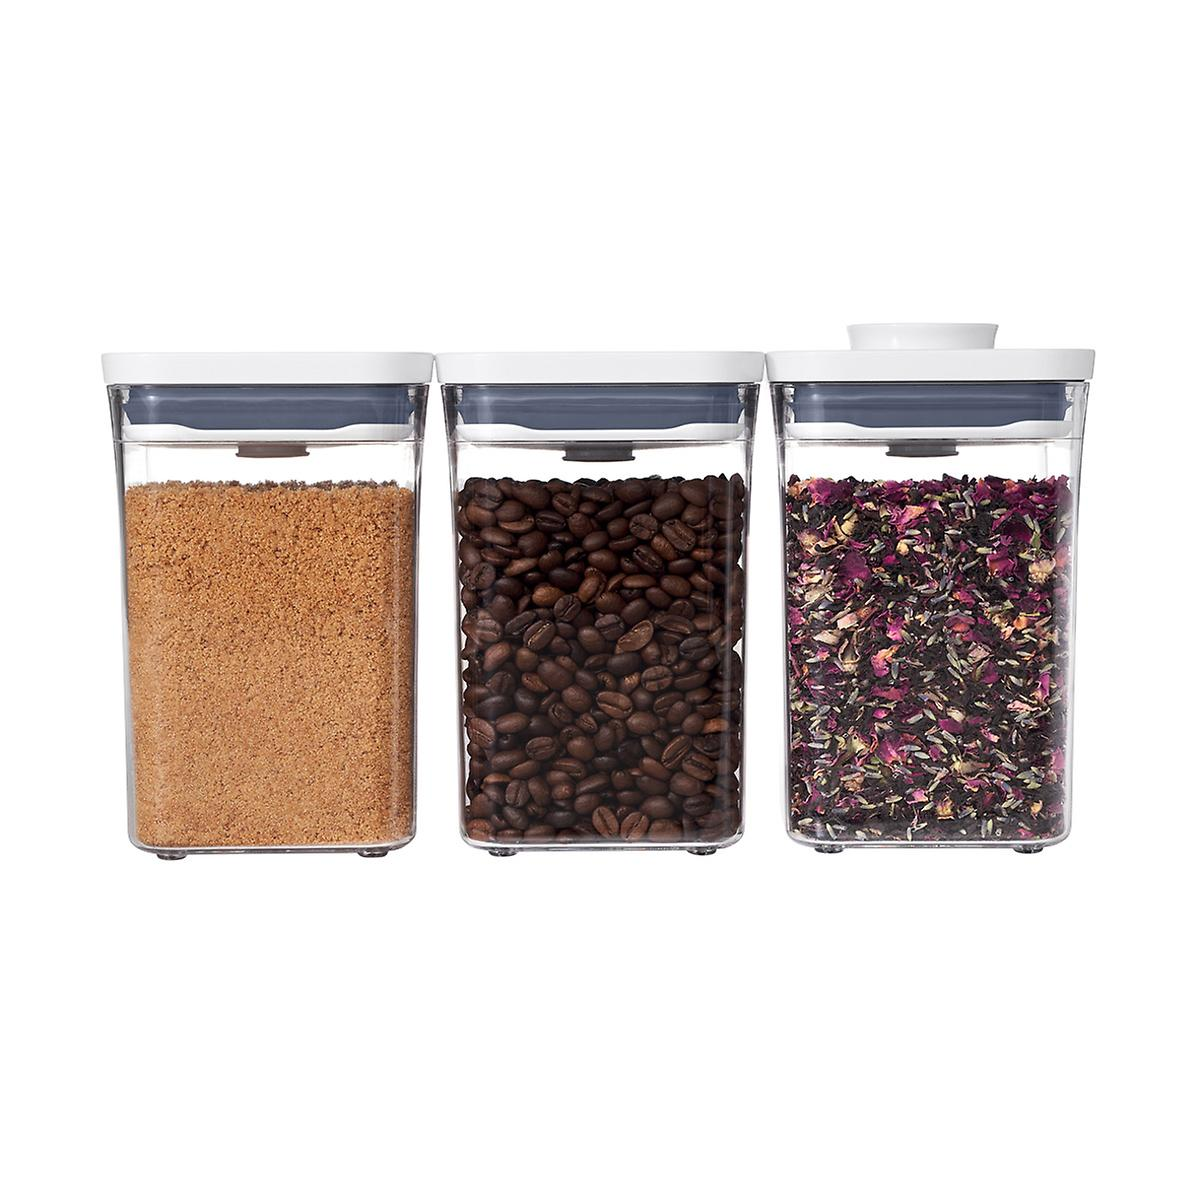 OXO Good Grips 3-Piece POP Canister Set